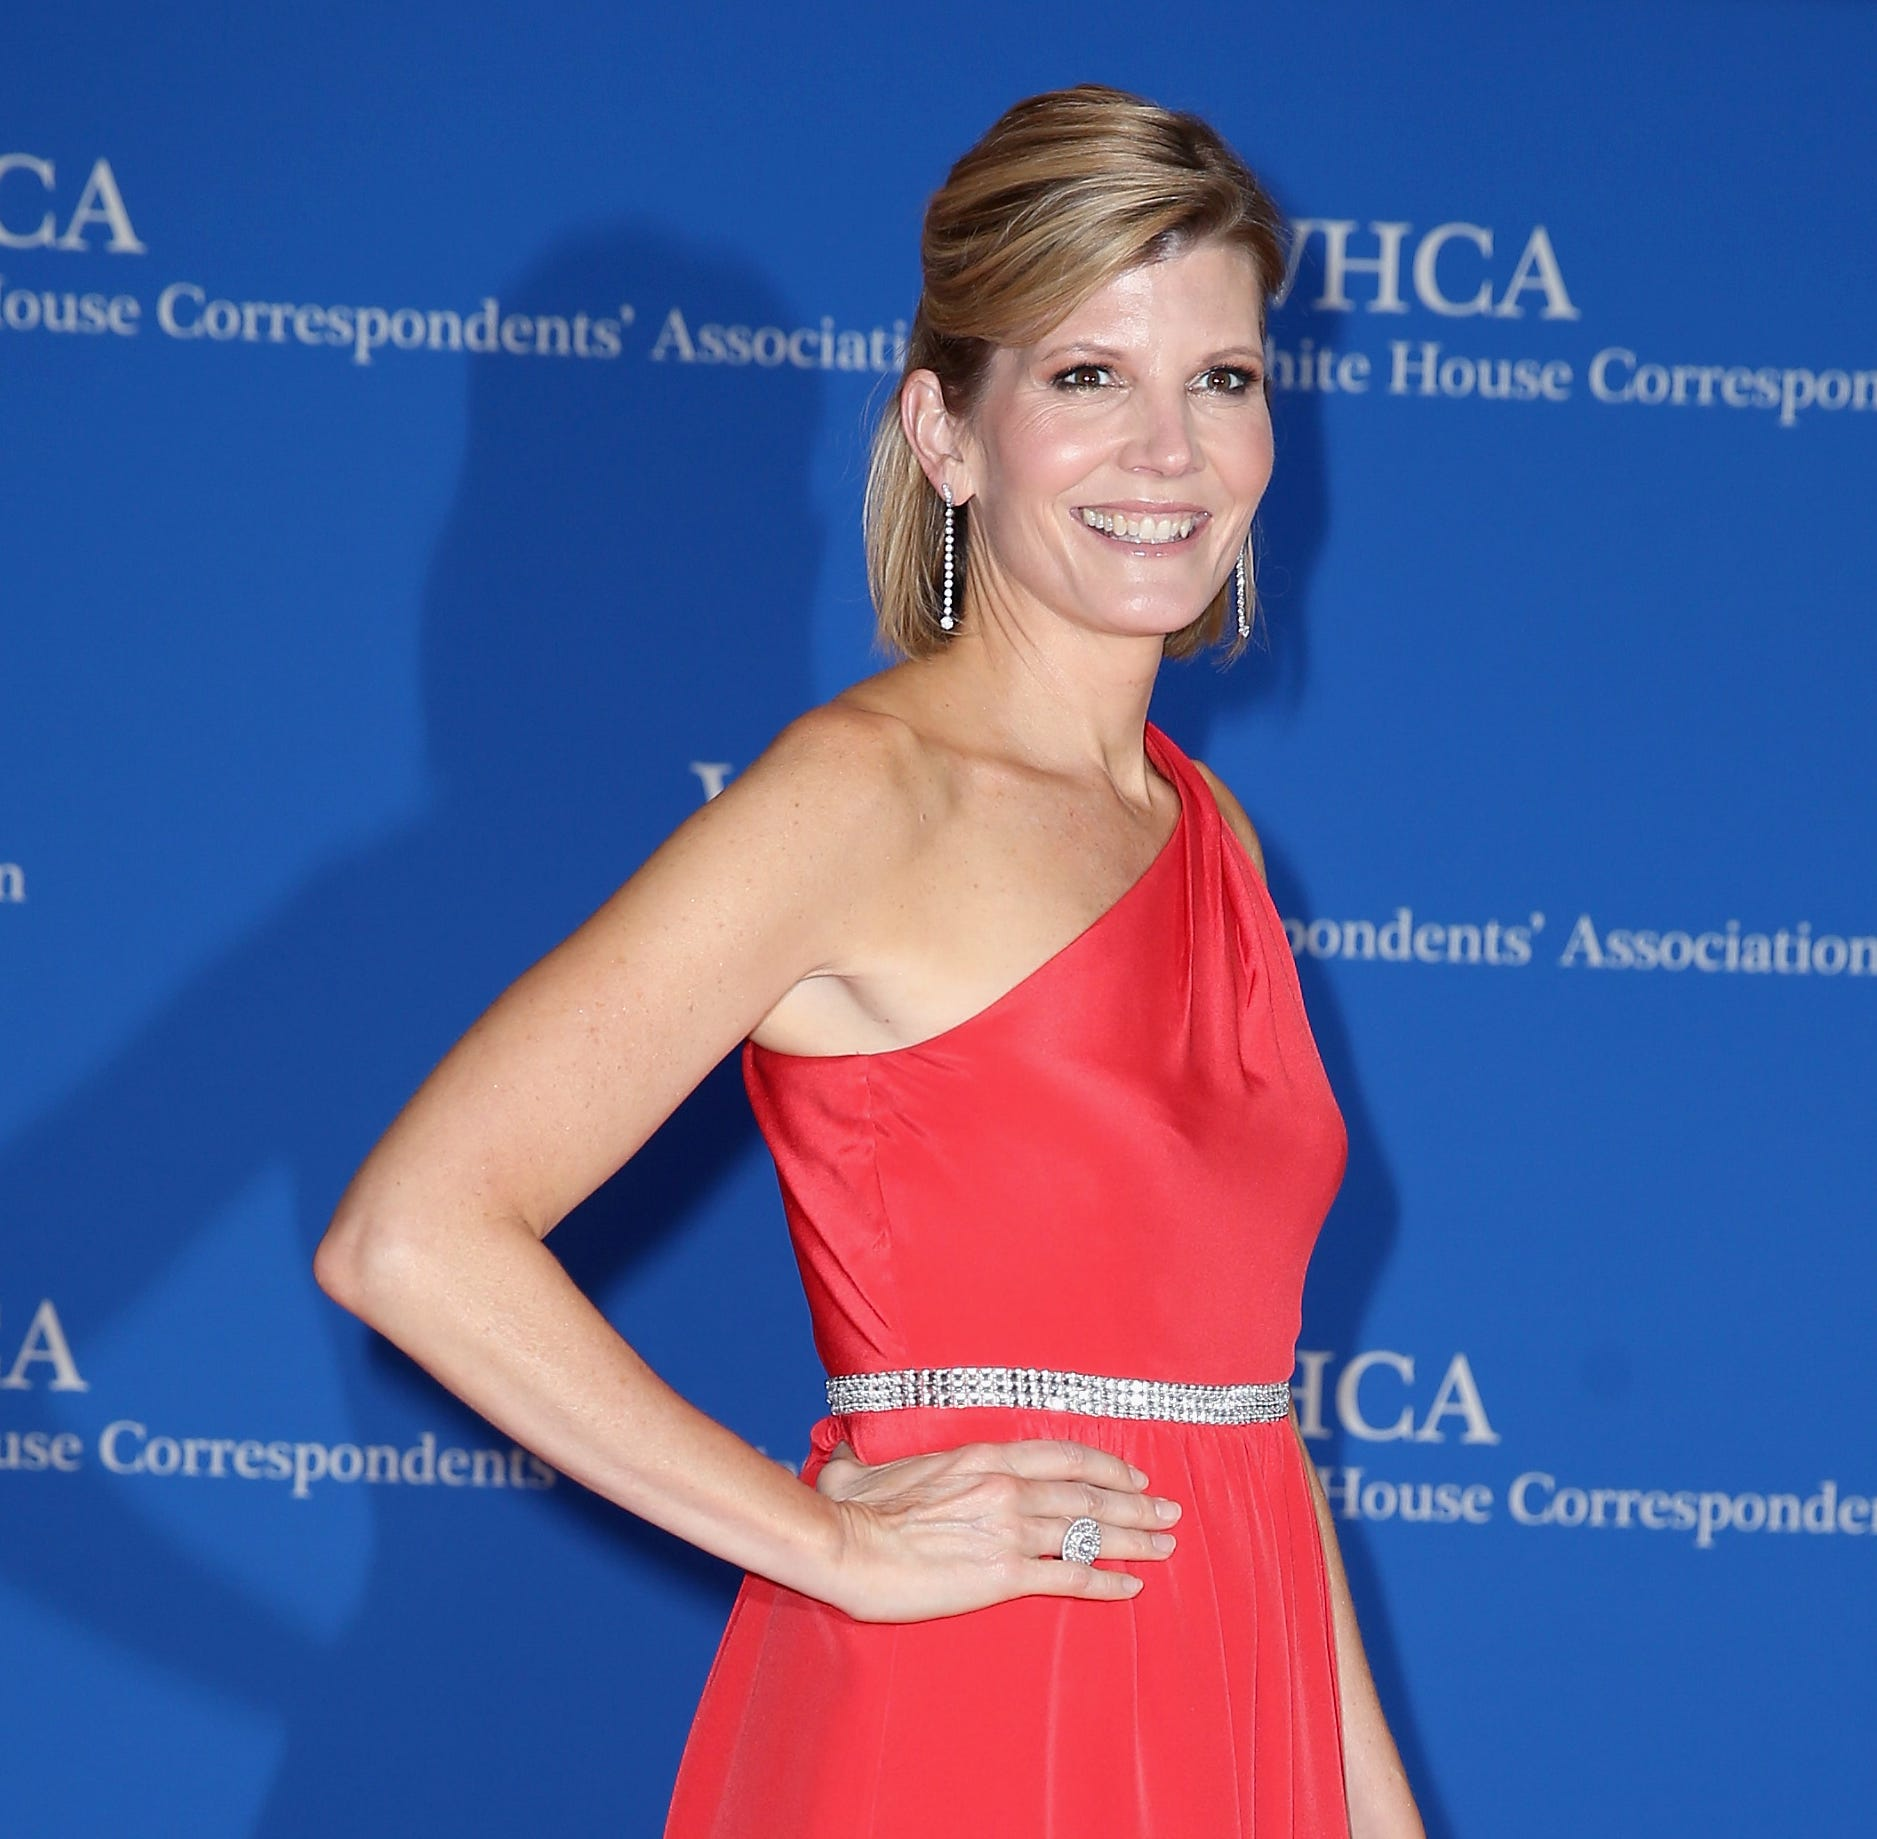 Journalist Kate Snow attends the 2017 White House Correspondents' Association Dinner at Washington Hilton on April 29, 2017 in Washington, DC.